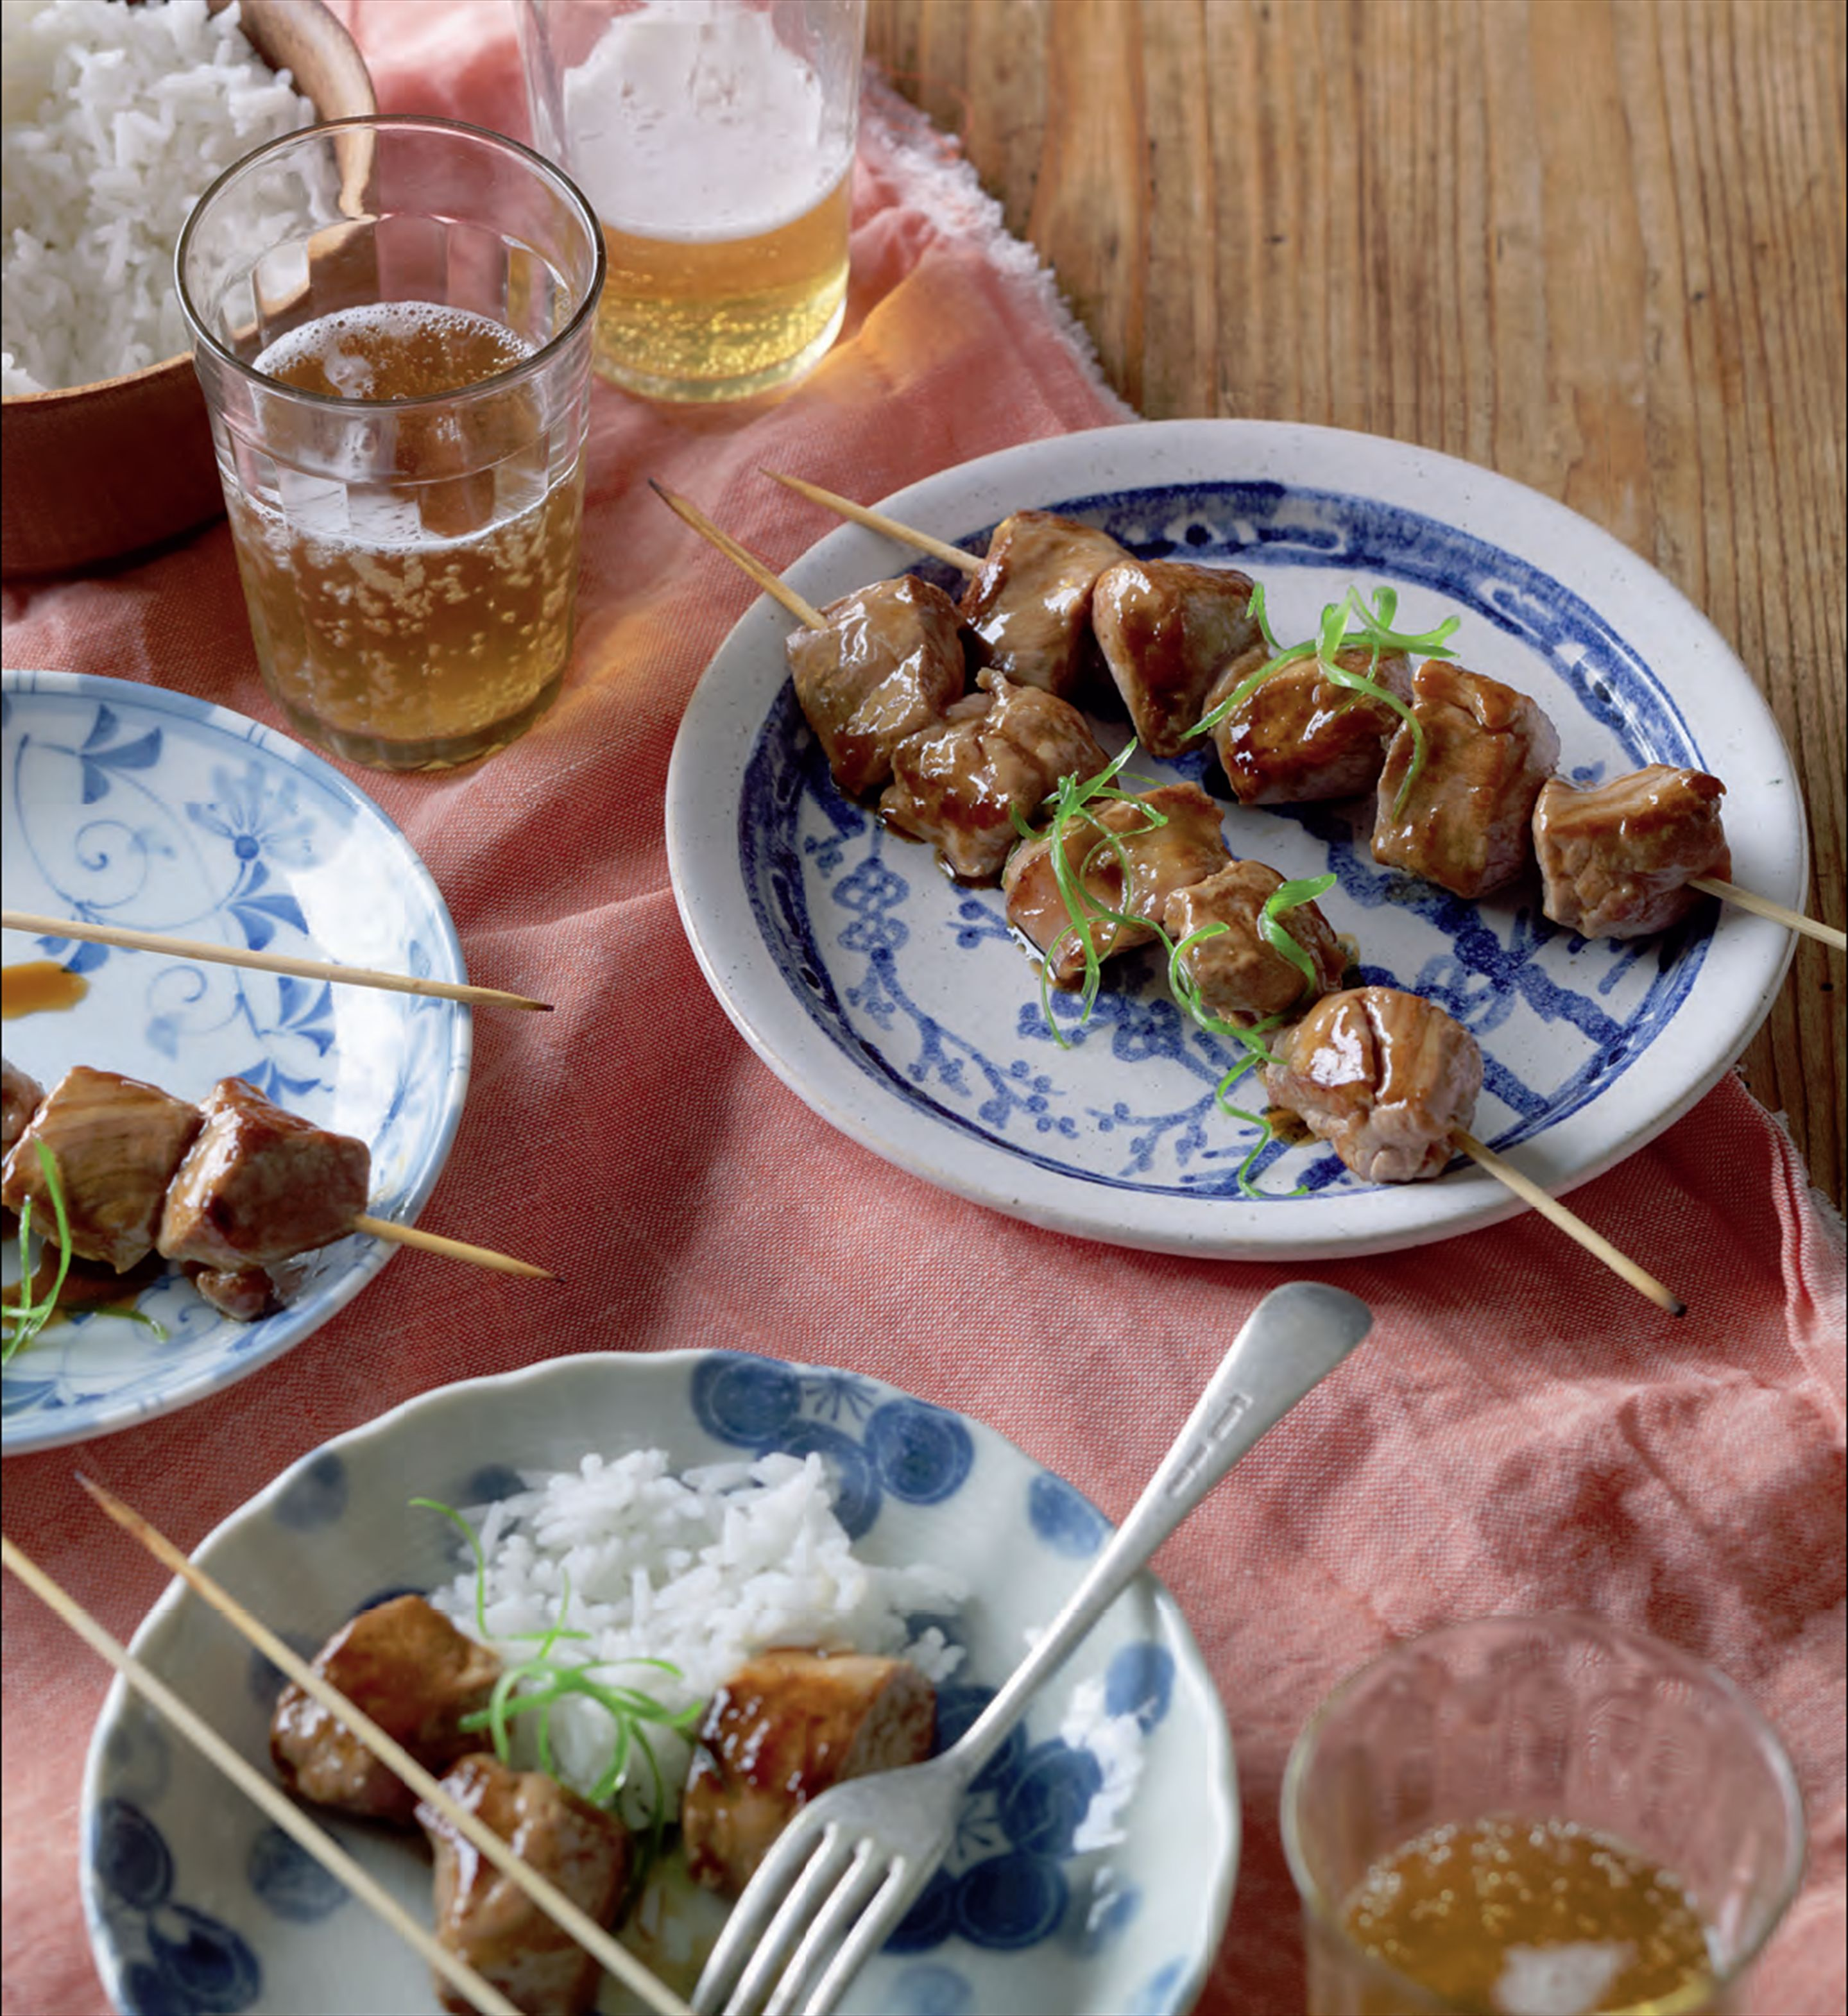 Pork skewers with umeboshi